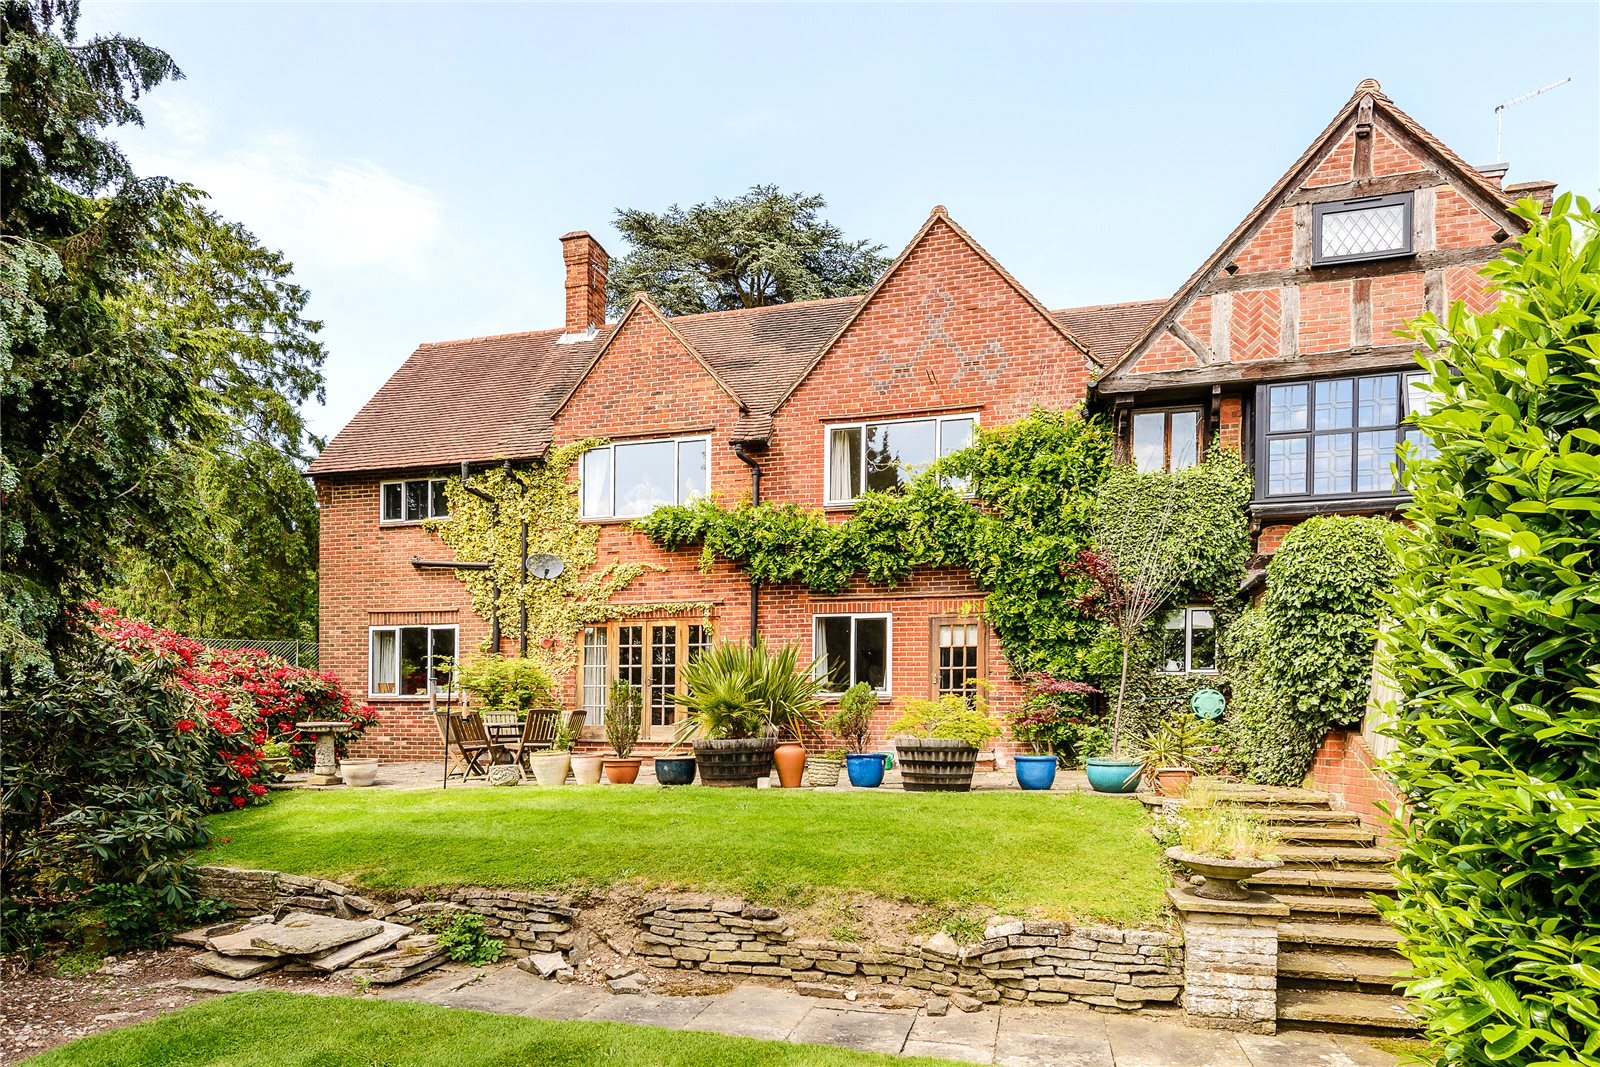 Additional photo for property listing at Fulmer Lane, Fulmer, Buckinghamshire, SL3 Fulmer, Engeland